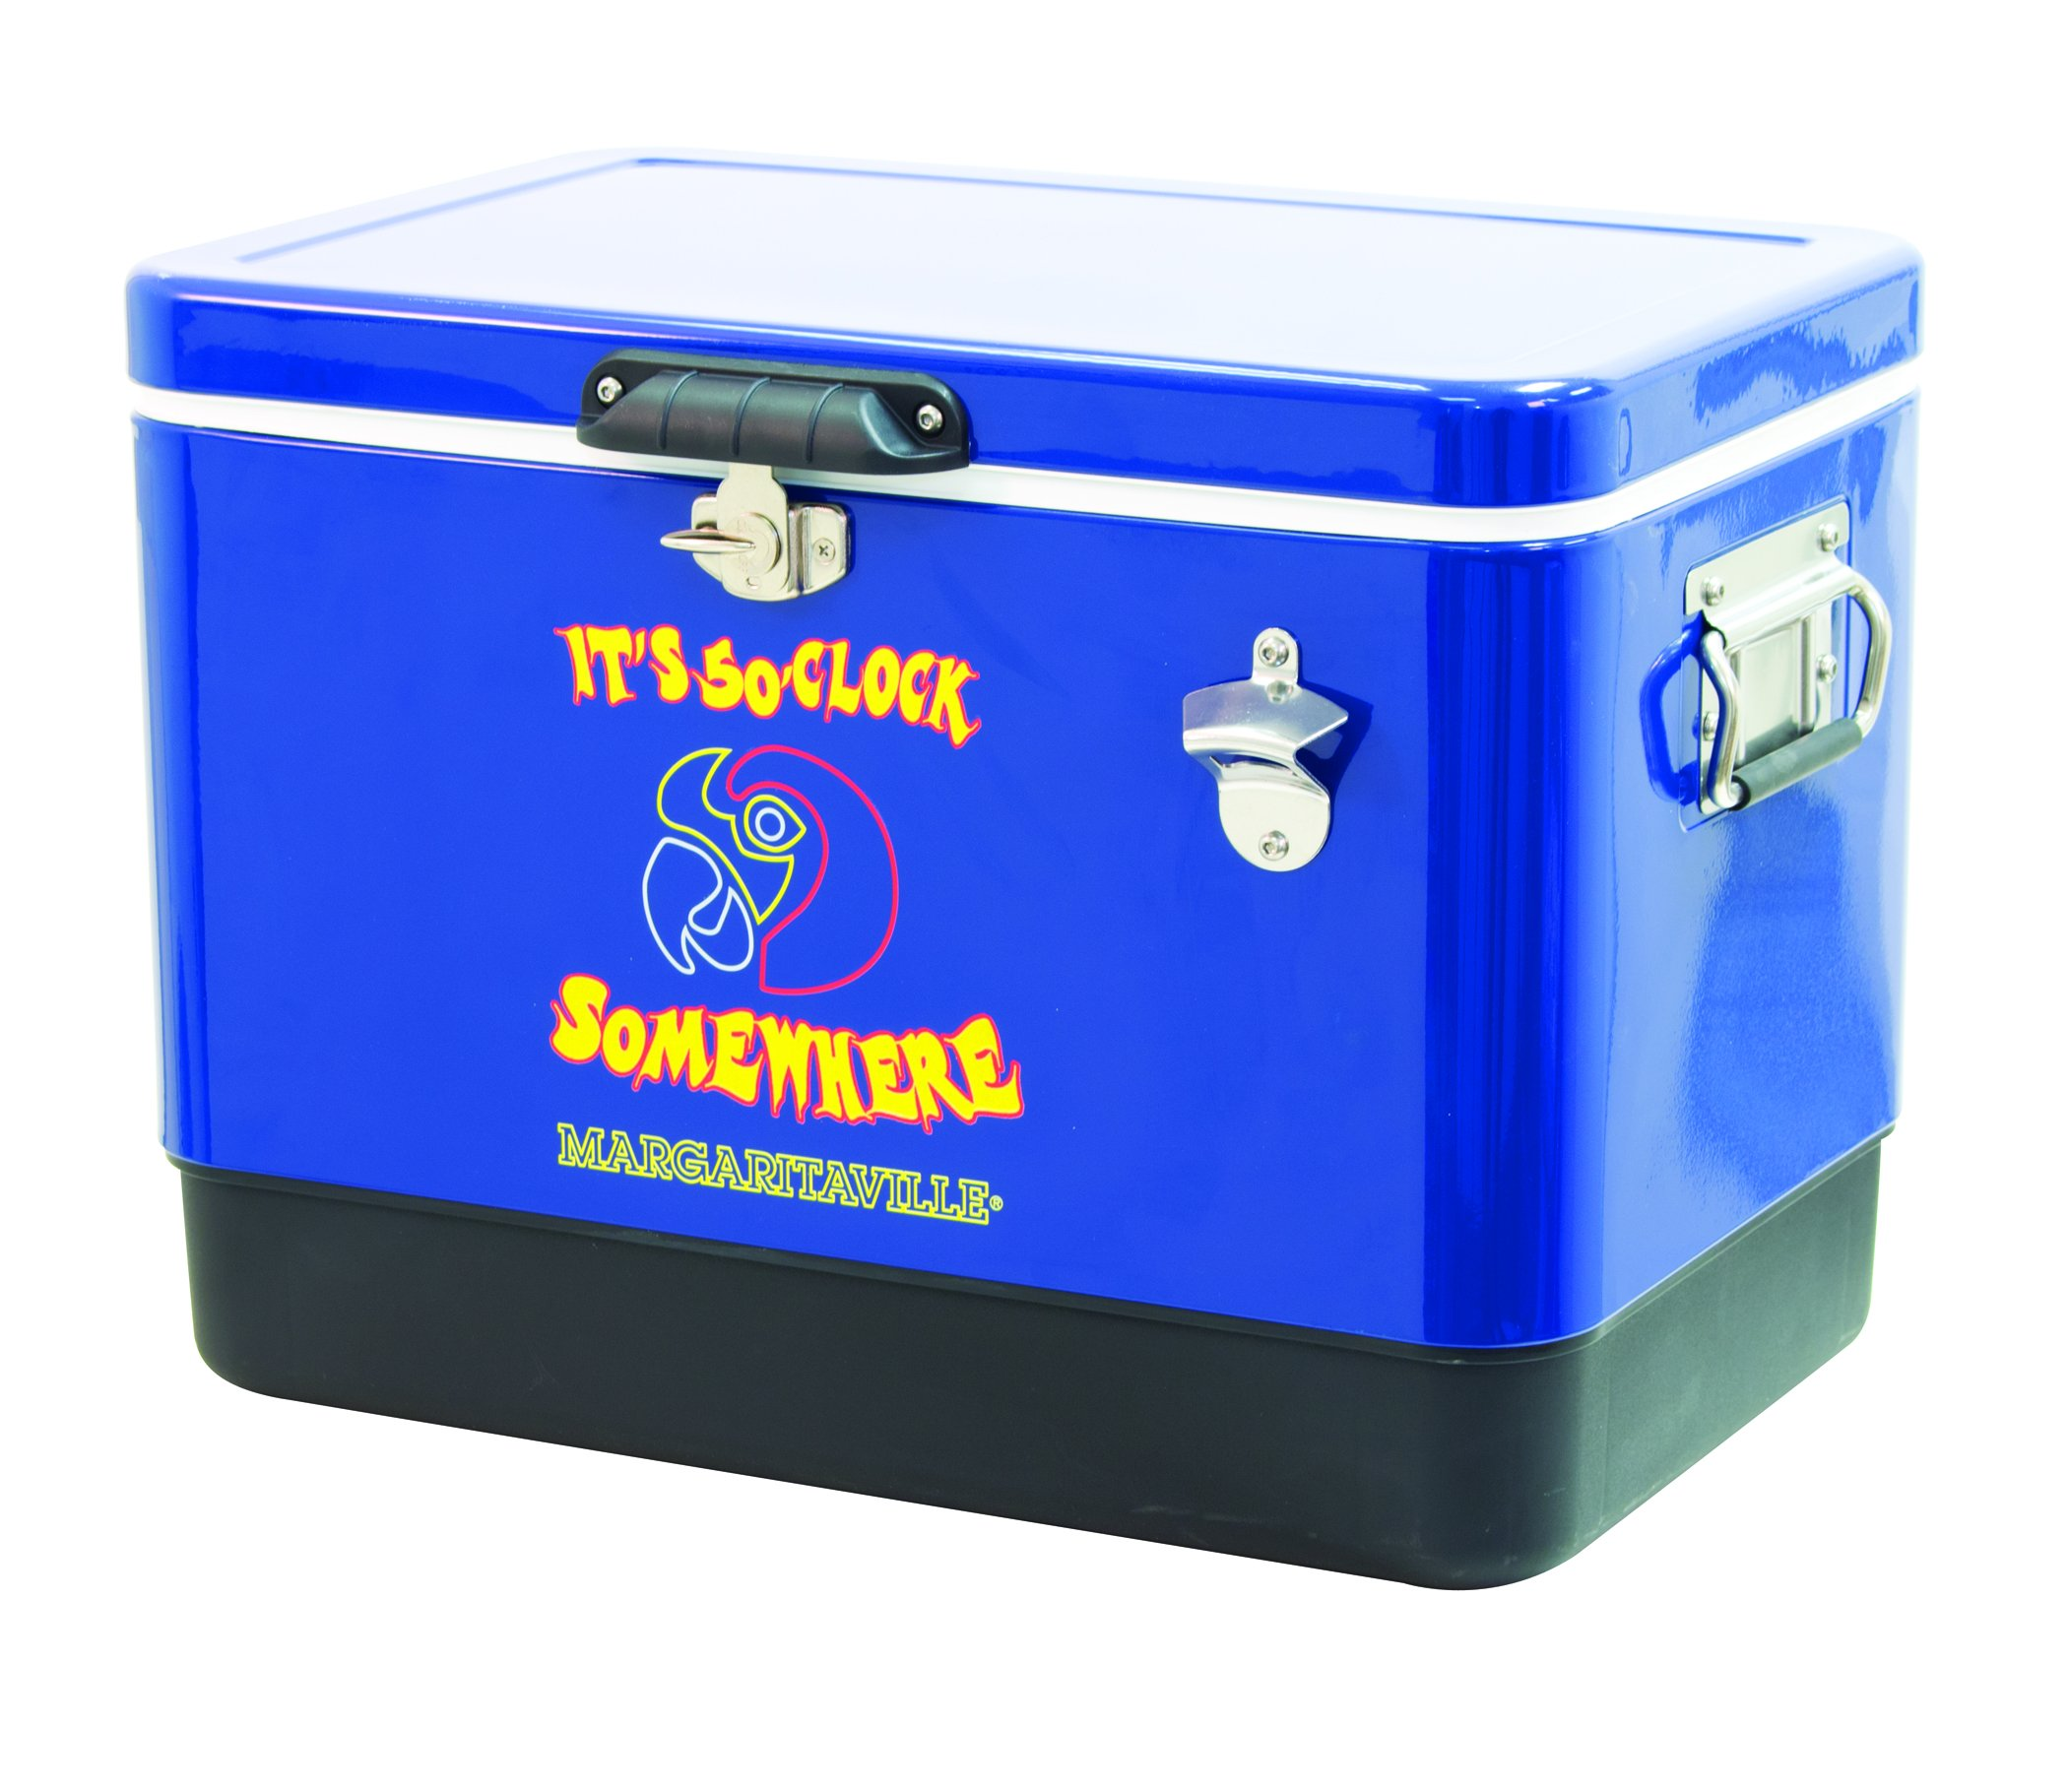 Margaritaville Outdoor ATC54MV-28 Margaritaville It's 5 O'clock Somewhere 54 Quart Steel Portable Bottle Opener Cooler, Blue by Margaritaville Outdoor (Image #2)